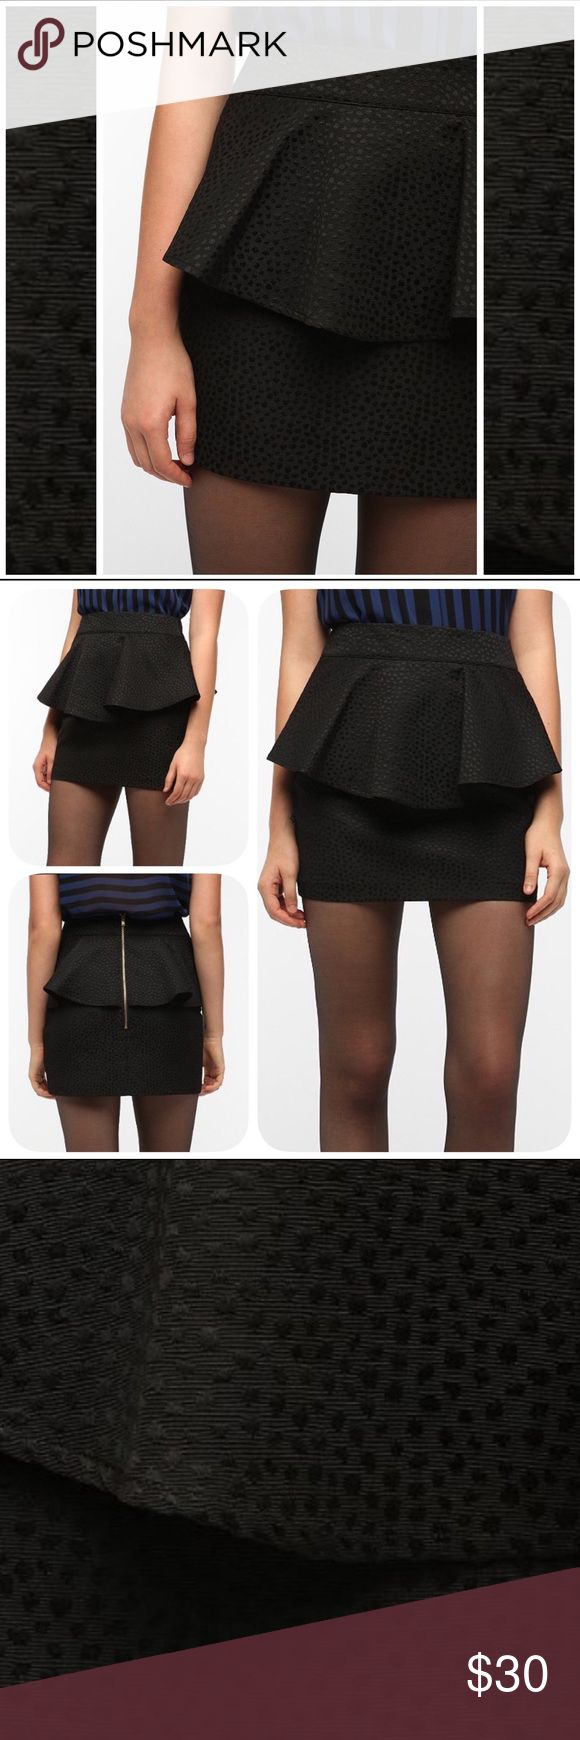 Urban Outfitters Peplum Skirt HP BOGO Textured, jacquard mini peplum skirt from silence & noise for Urban Outfitters. Cut in a tulip silhouette; exposed zip at the back. Topped with a ruffled peplum at the waist. Allover jacquard dot texturing. Fully lined. Size 10. New with tags and in perfect condition. Urban Outfitters Skirts